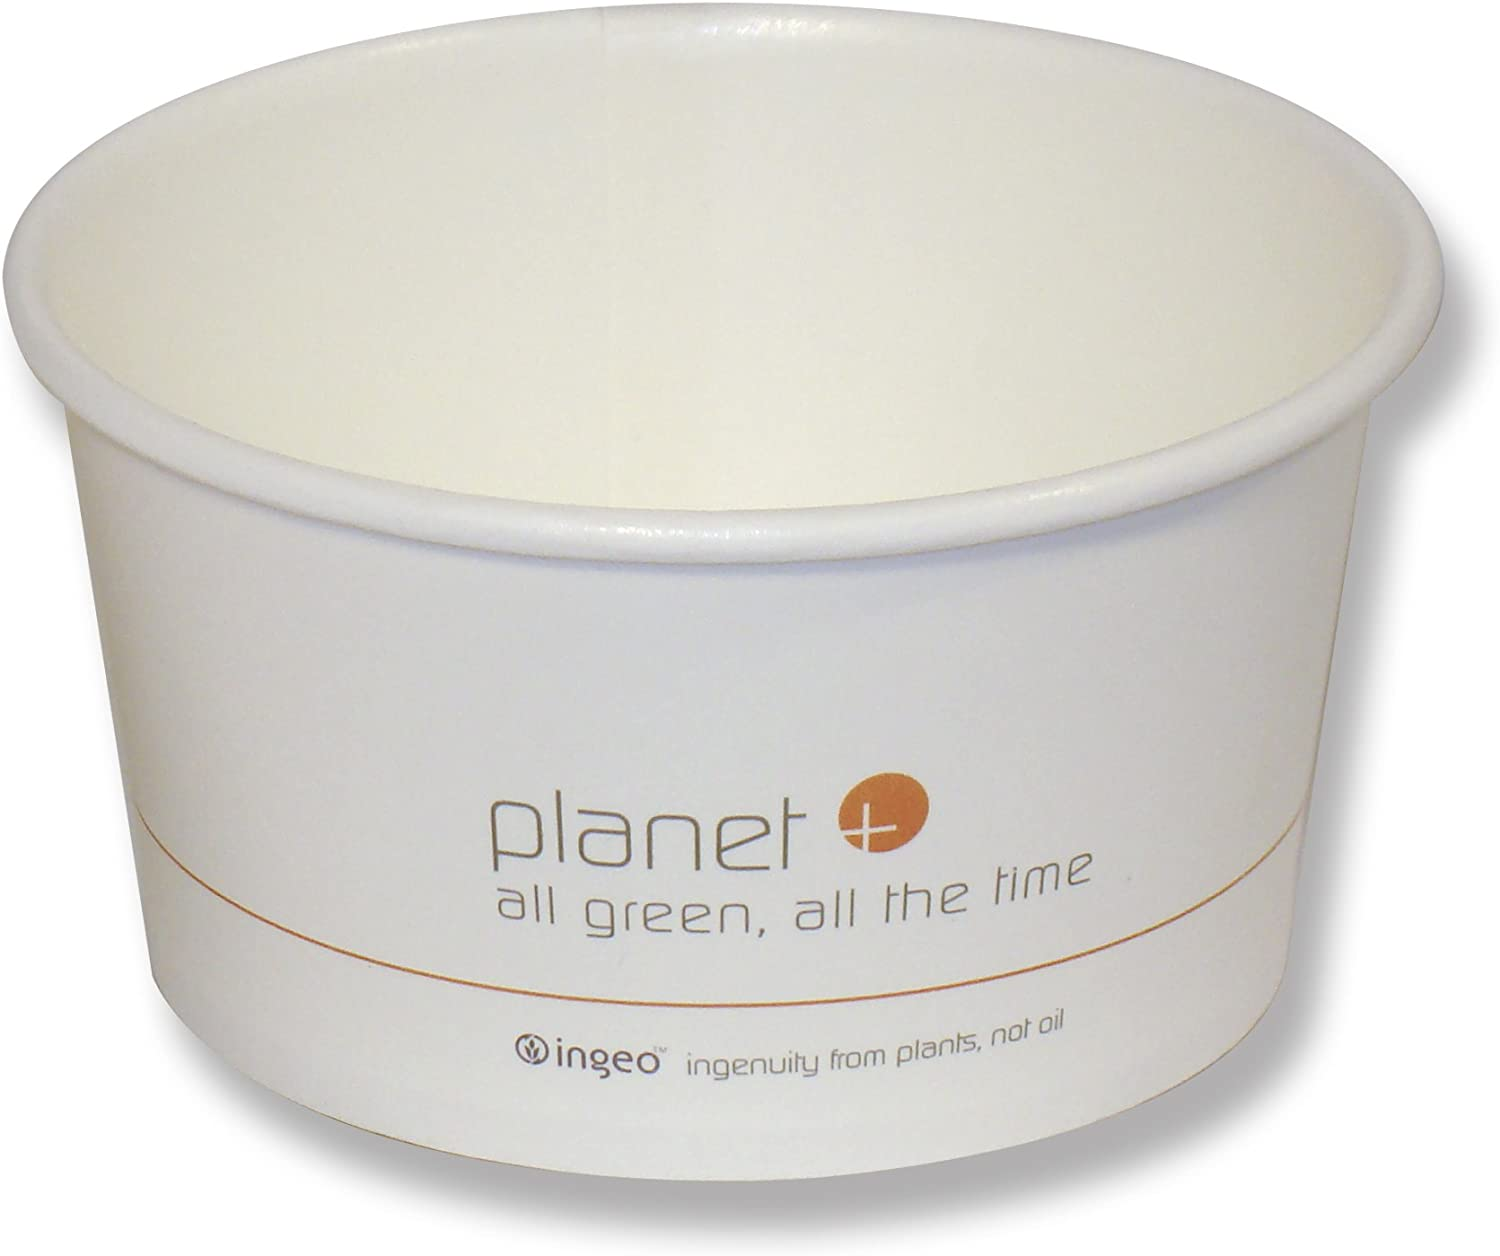 Planet+ 100% Compostable PLA Laminated Food Container, 12-Ounce, 500-Count Case